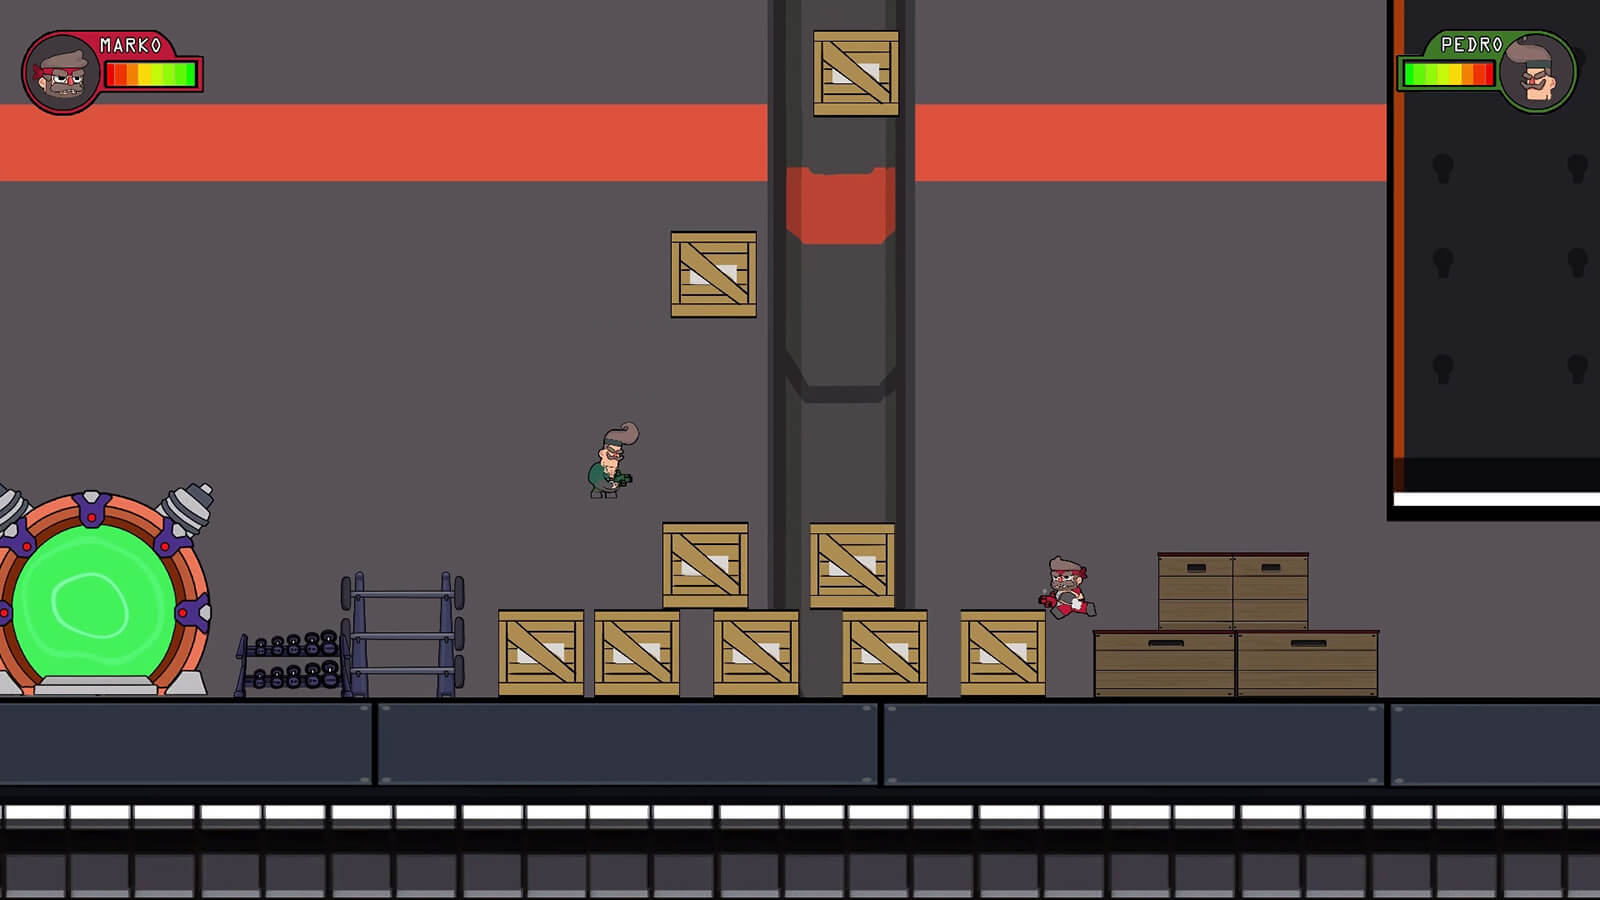 Two, 2D characters in red and green garb respectively jump around a gym environment while tossing wooden crates.